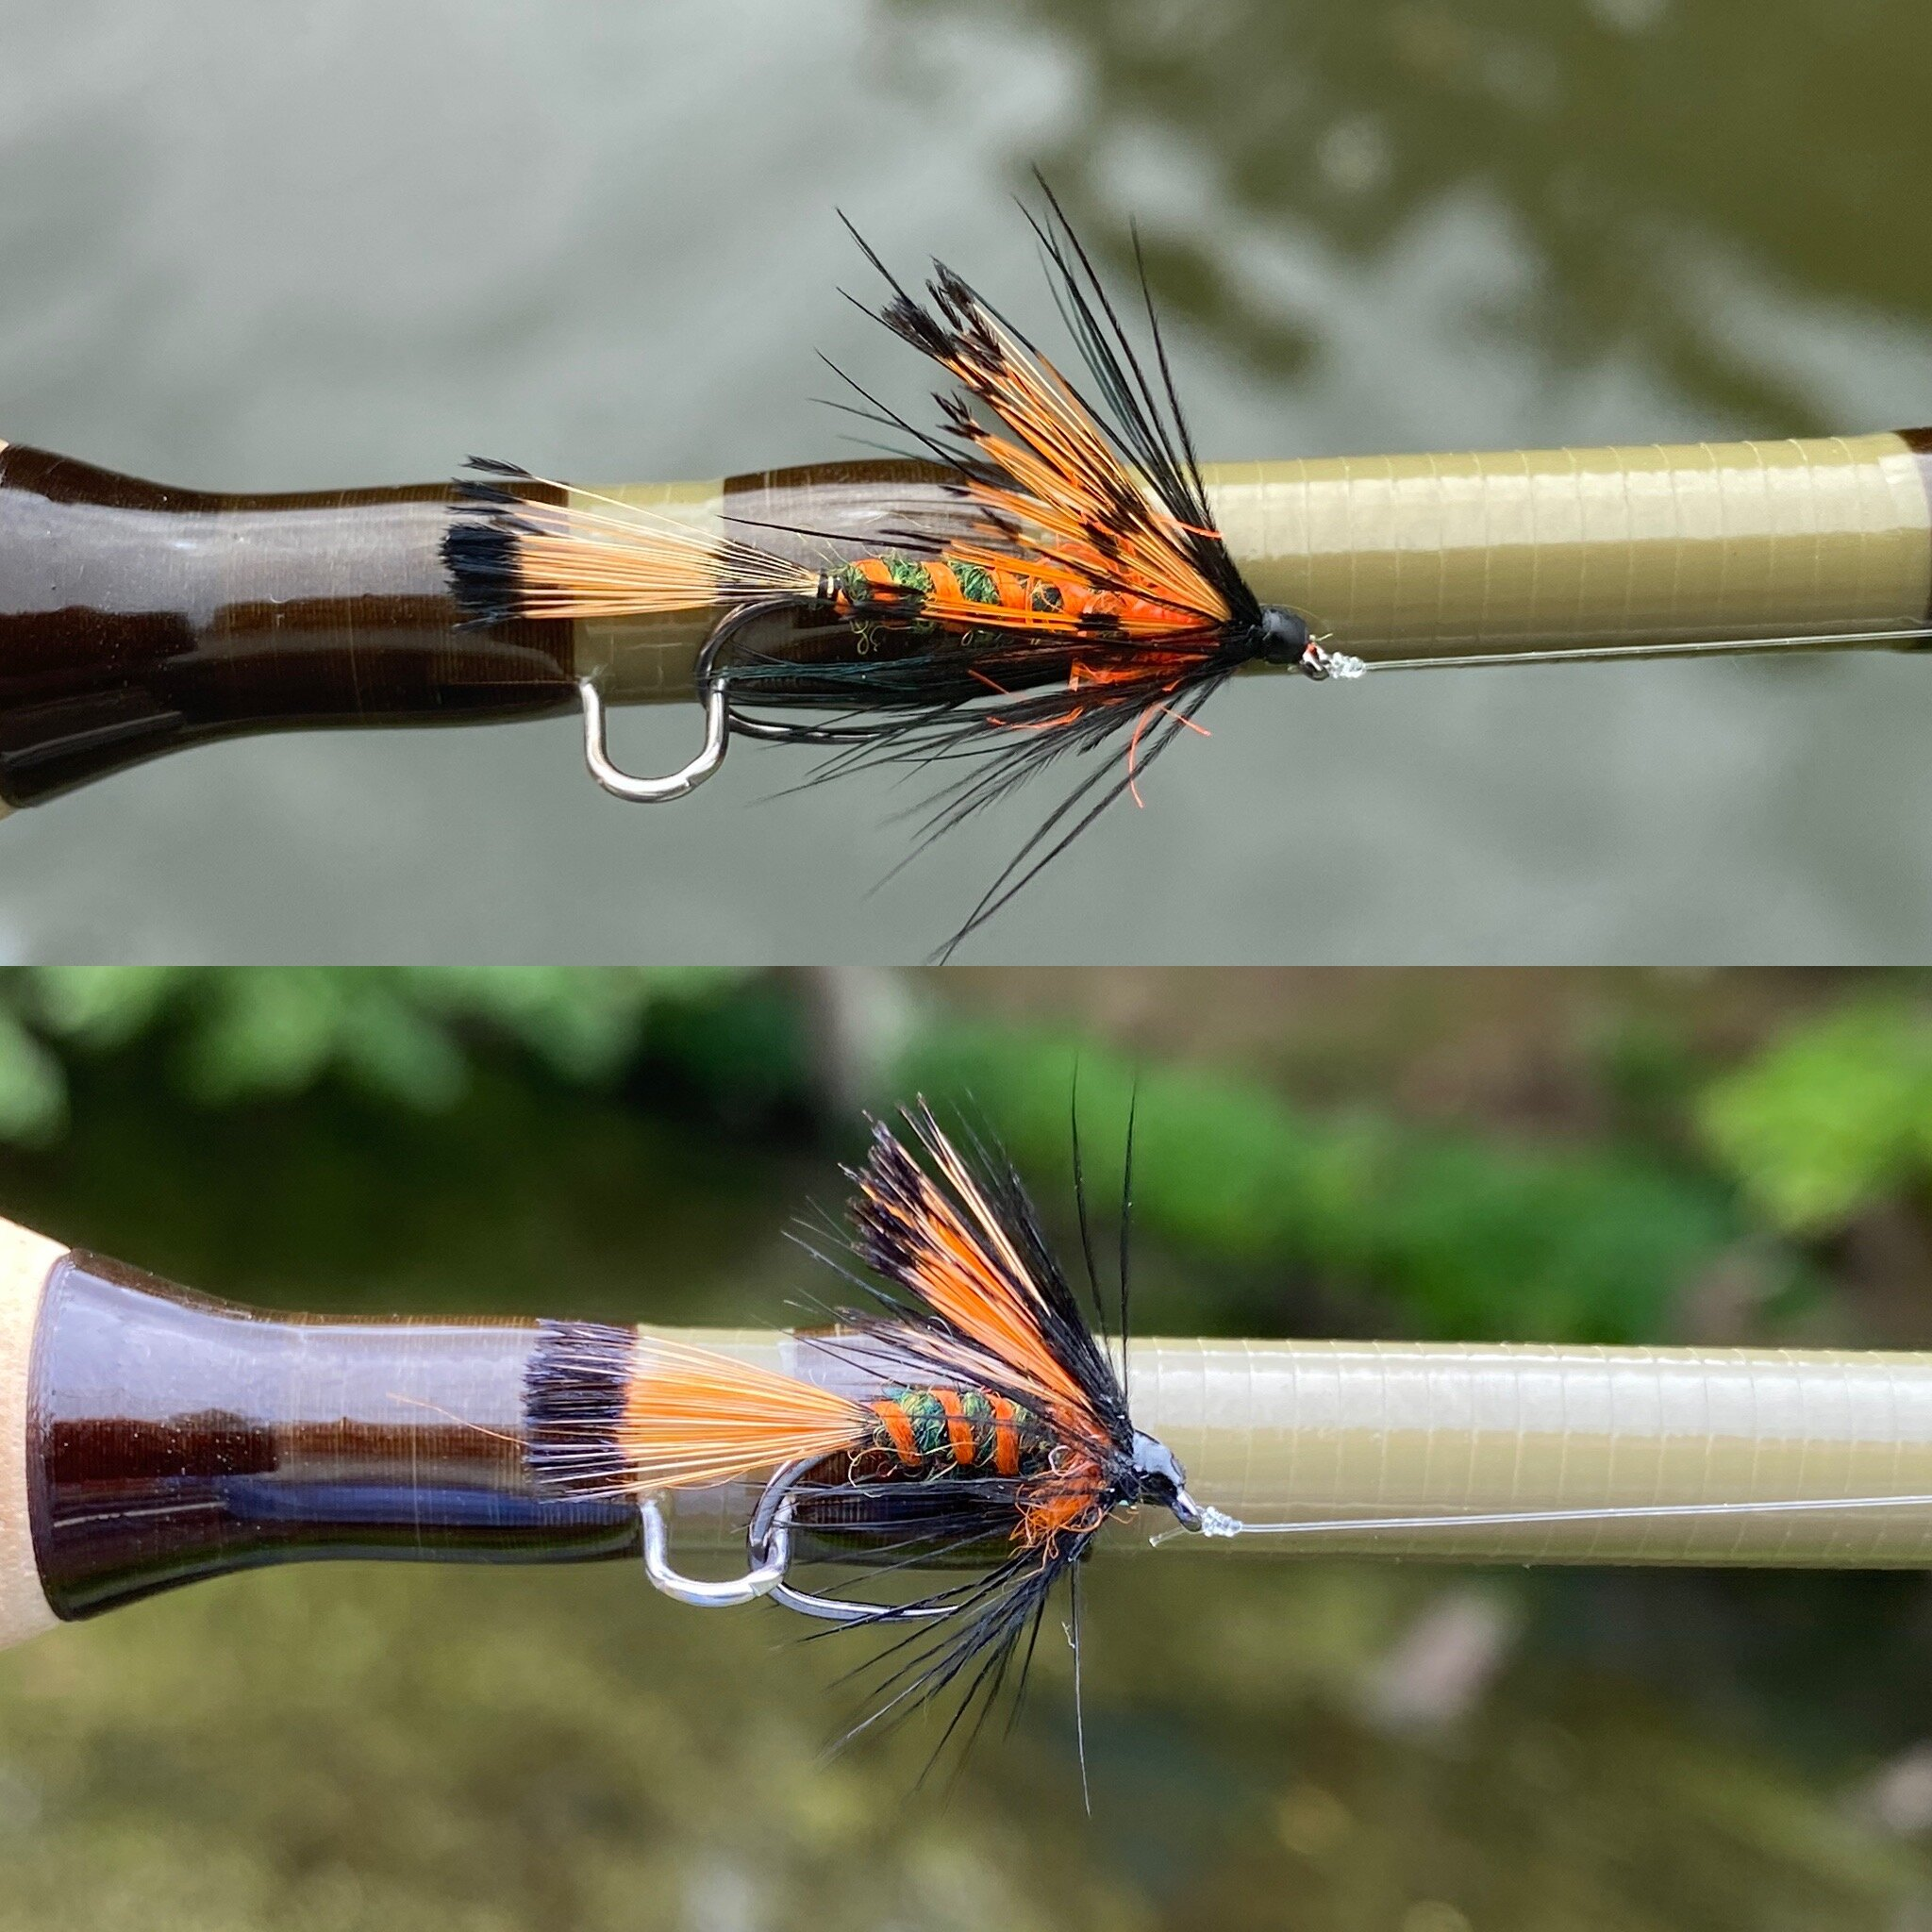 The fly was equally effective tied on a long shank streamer hook or as a short shanked wet fly.